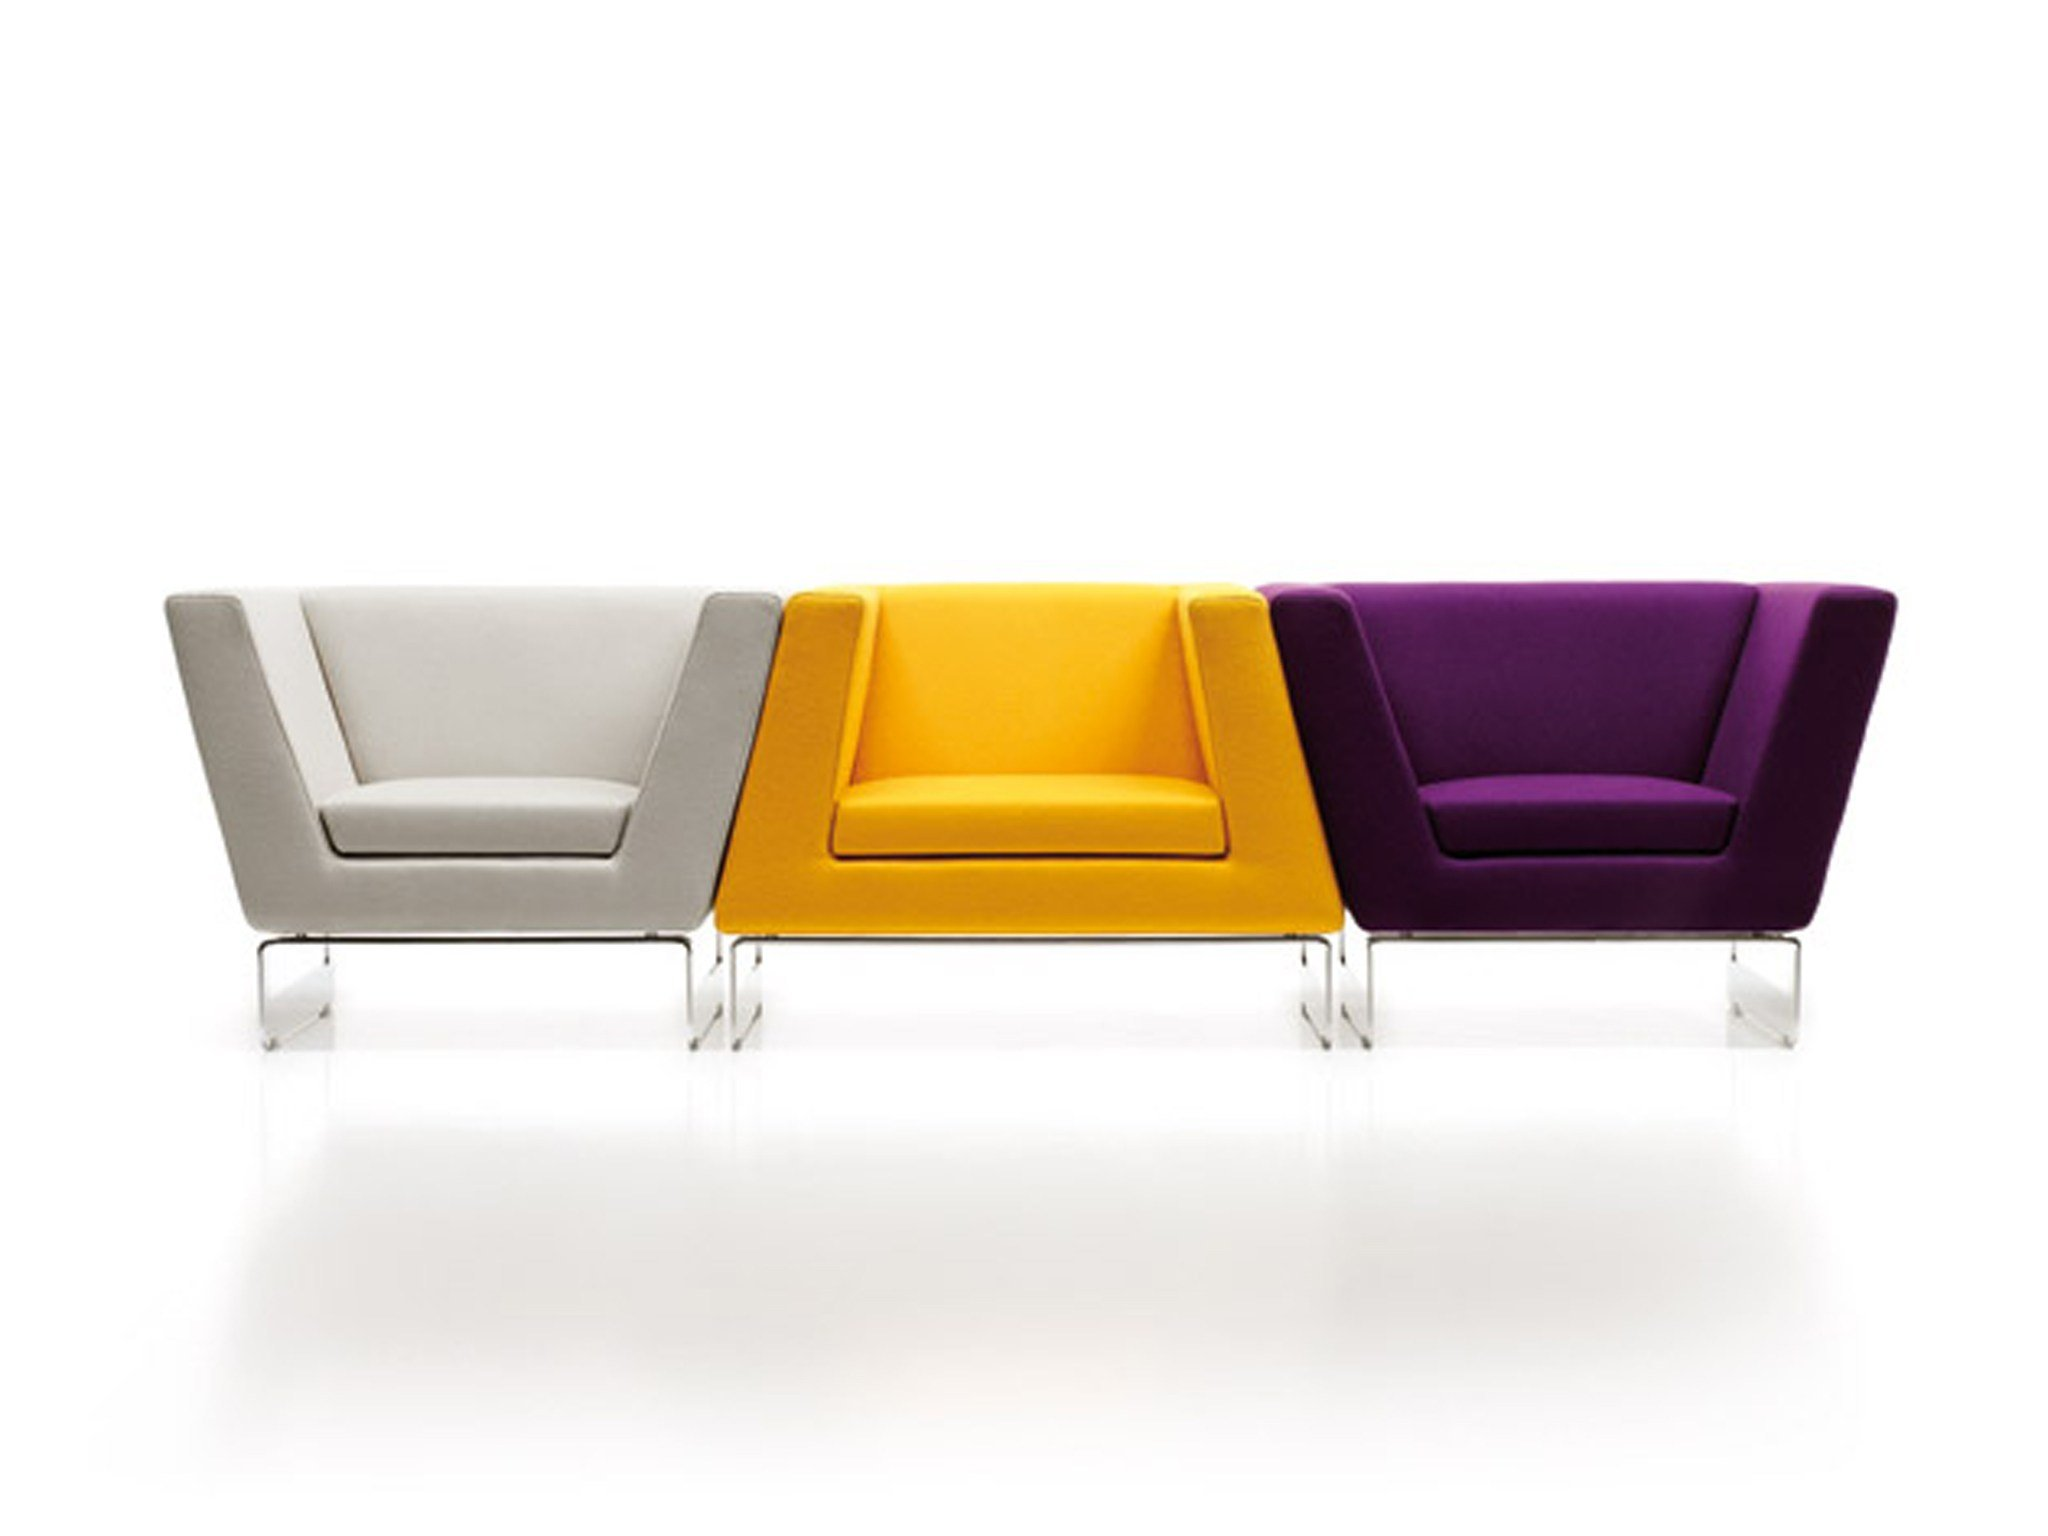 ESTEL GROUP | Products | Archiproducts - Armchair with fire retardant padding LADY & SIR FUNK. ESTEL GROUP